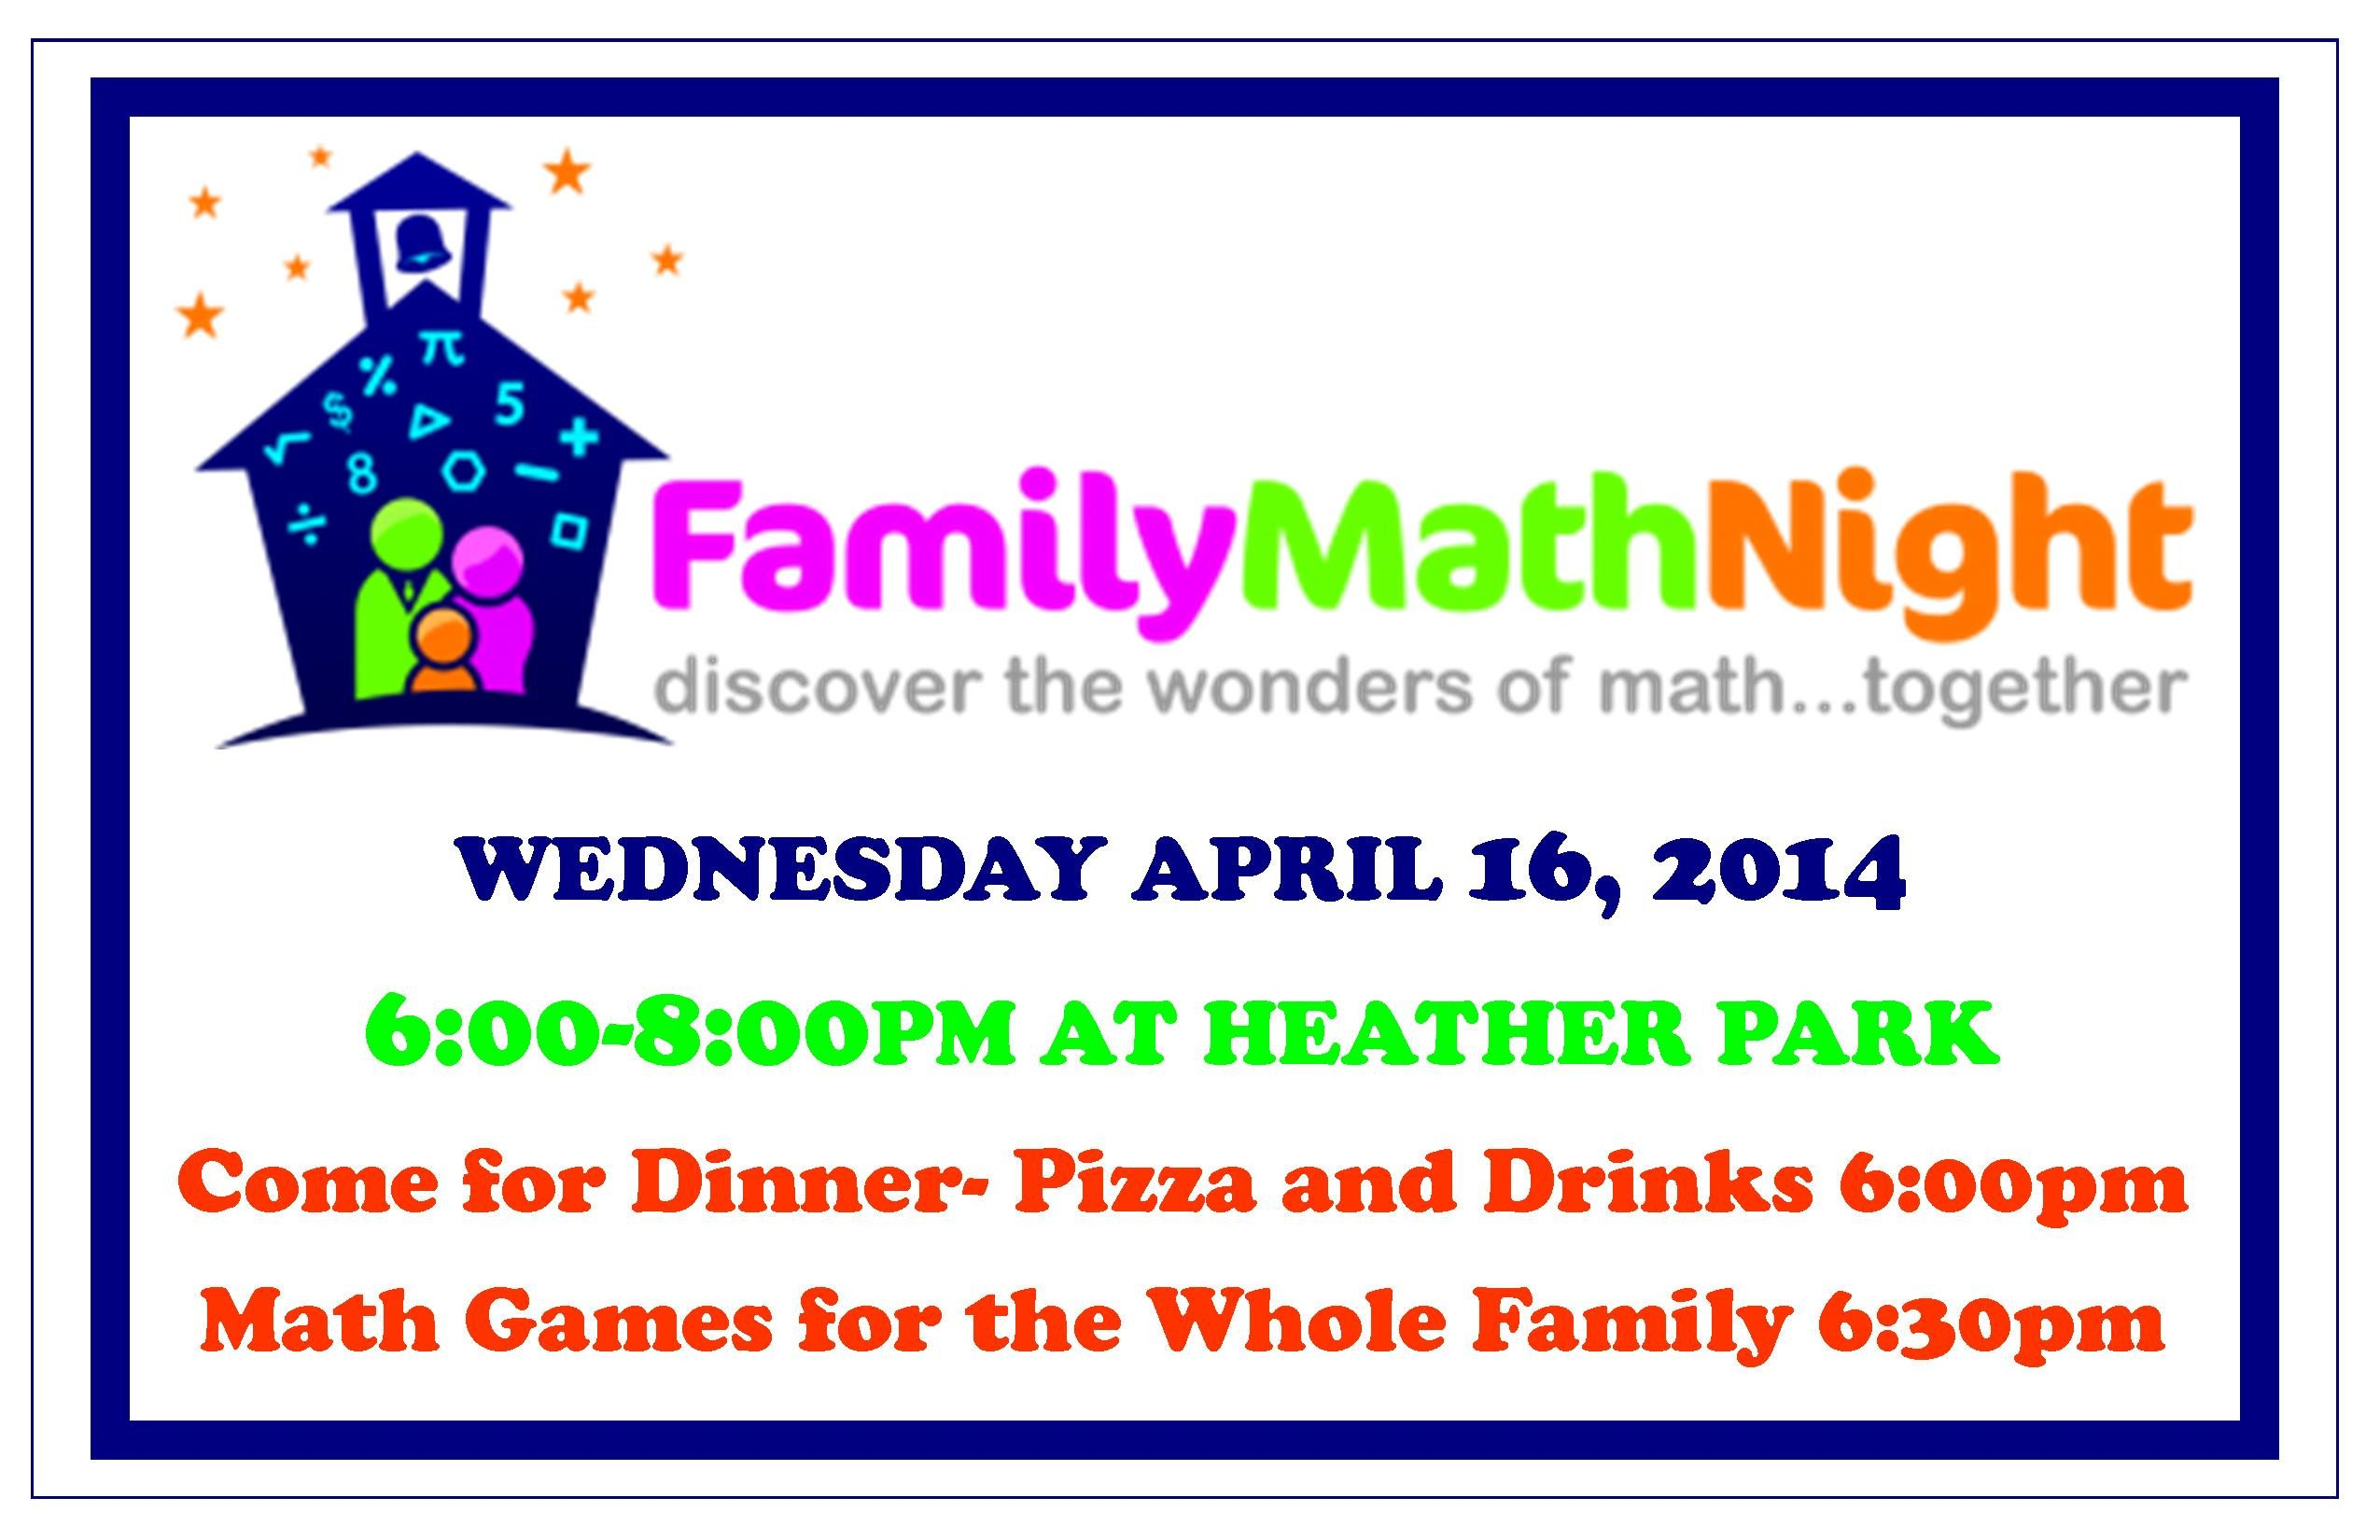 Family Math Night Flyers Family Math Night at Heather Park School Wednesday April